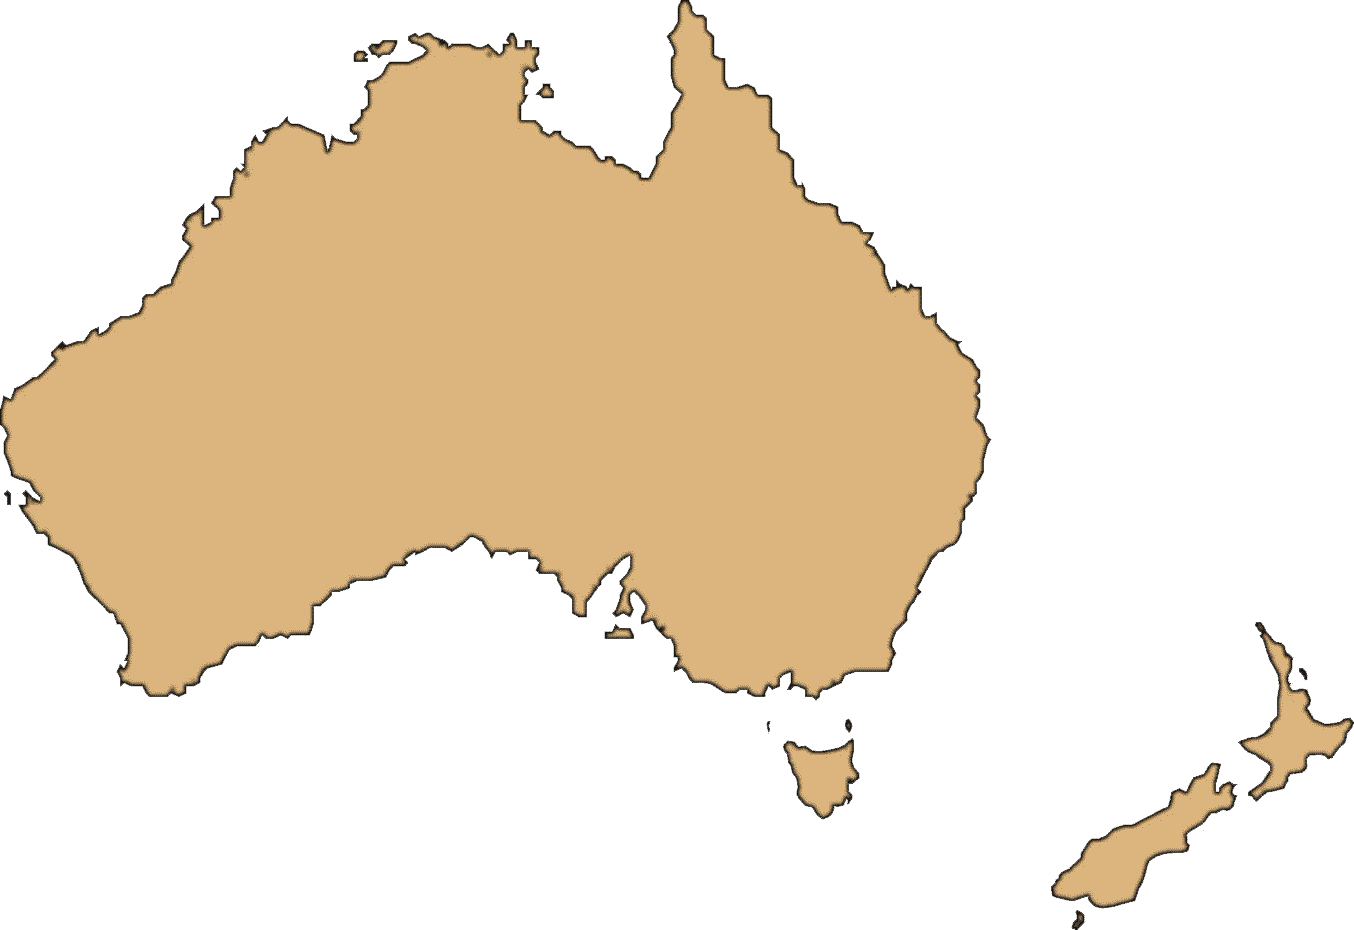 Australia Map Transparent Background PNG Image